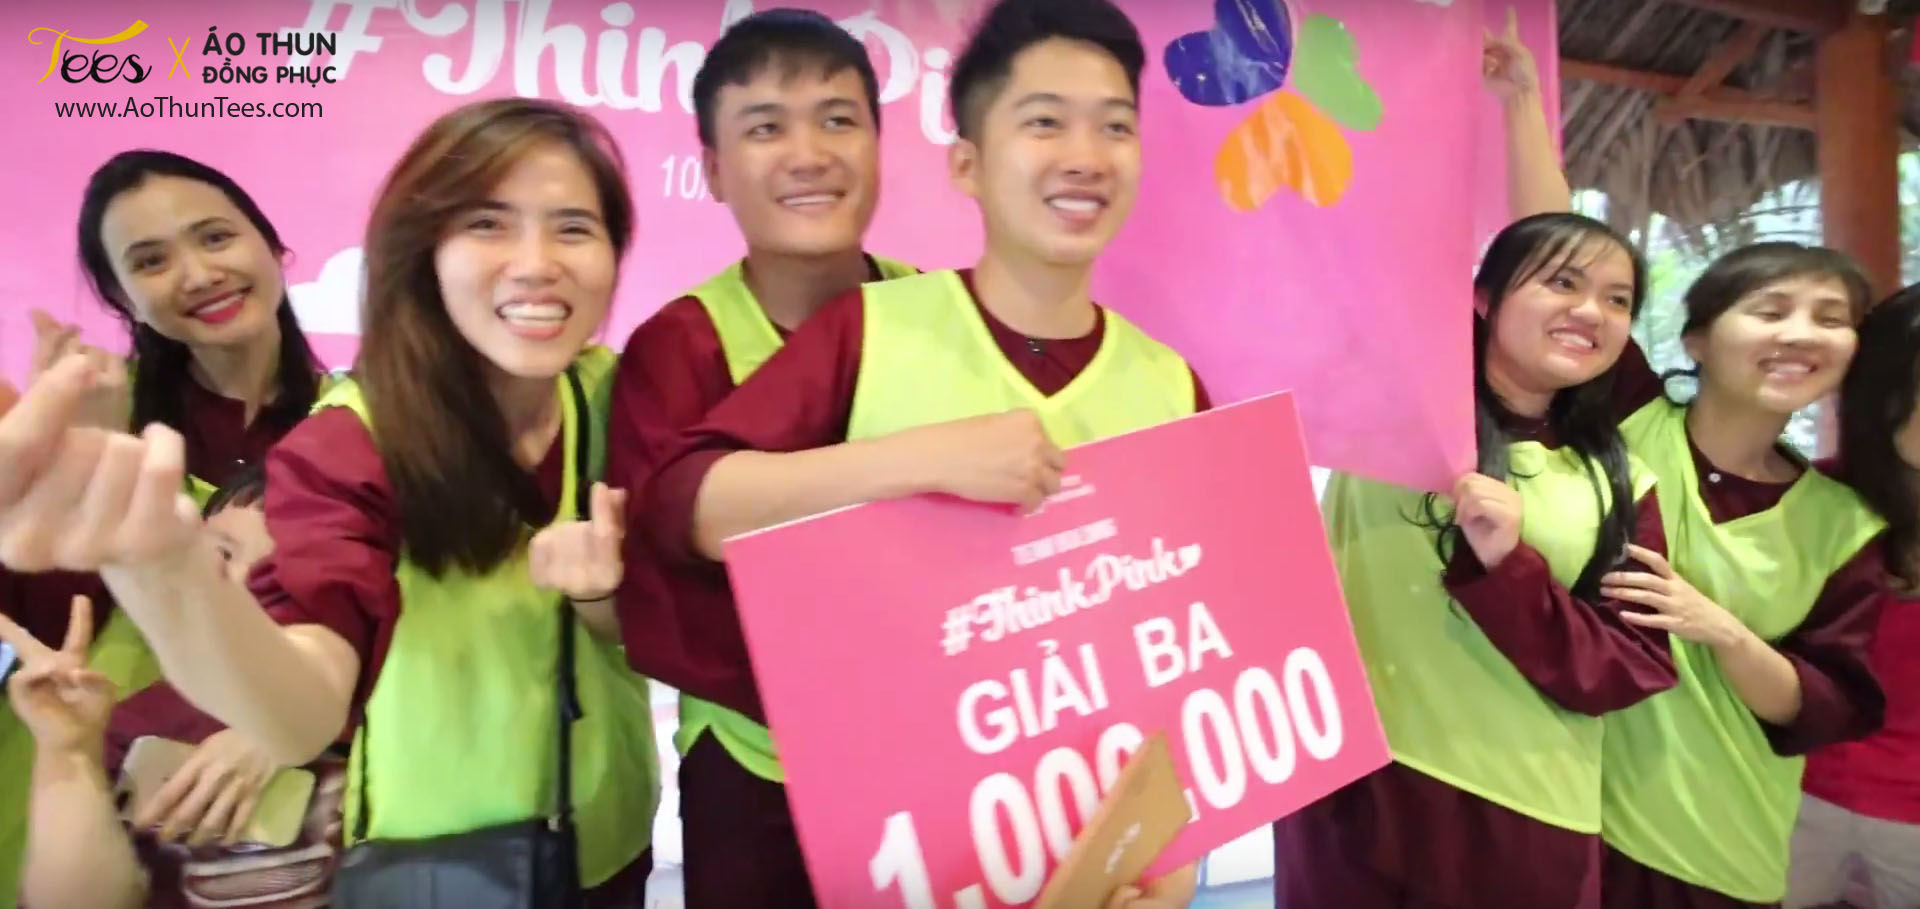 thinkpink marryvn10 - Ửng hồng áo thun Teambuilding #ThinkPink – Marry.vn